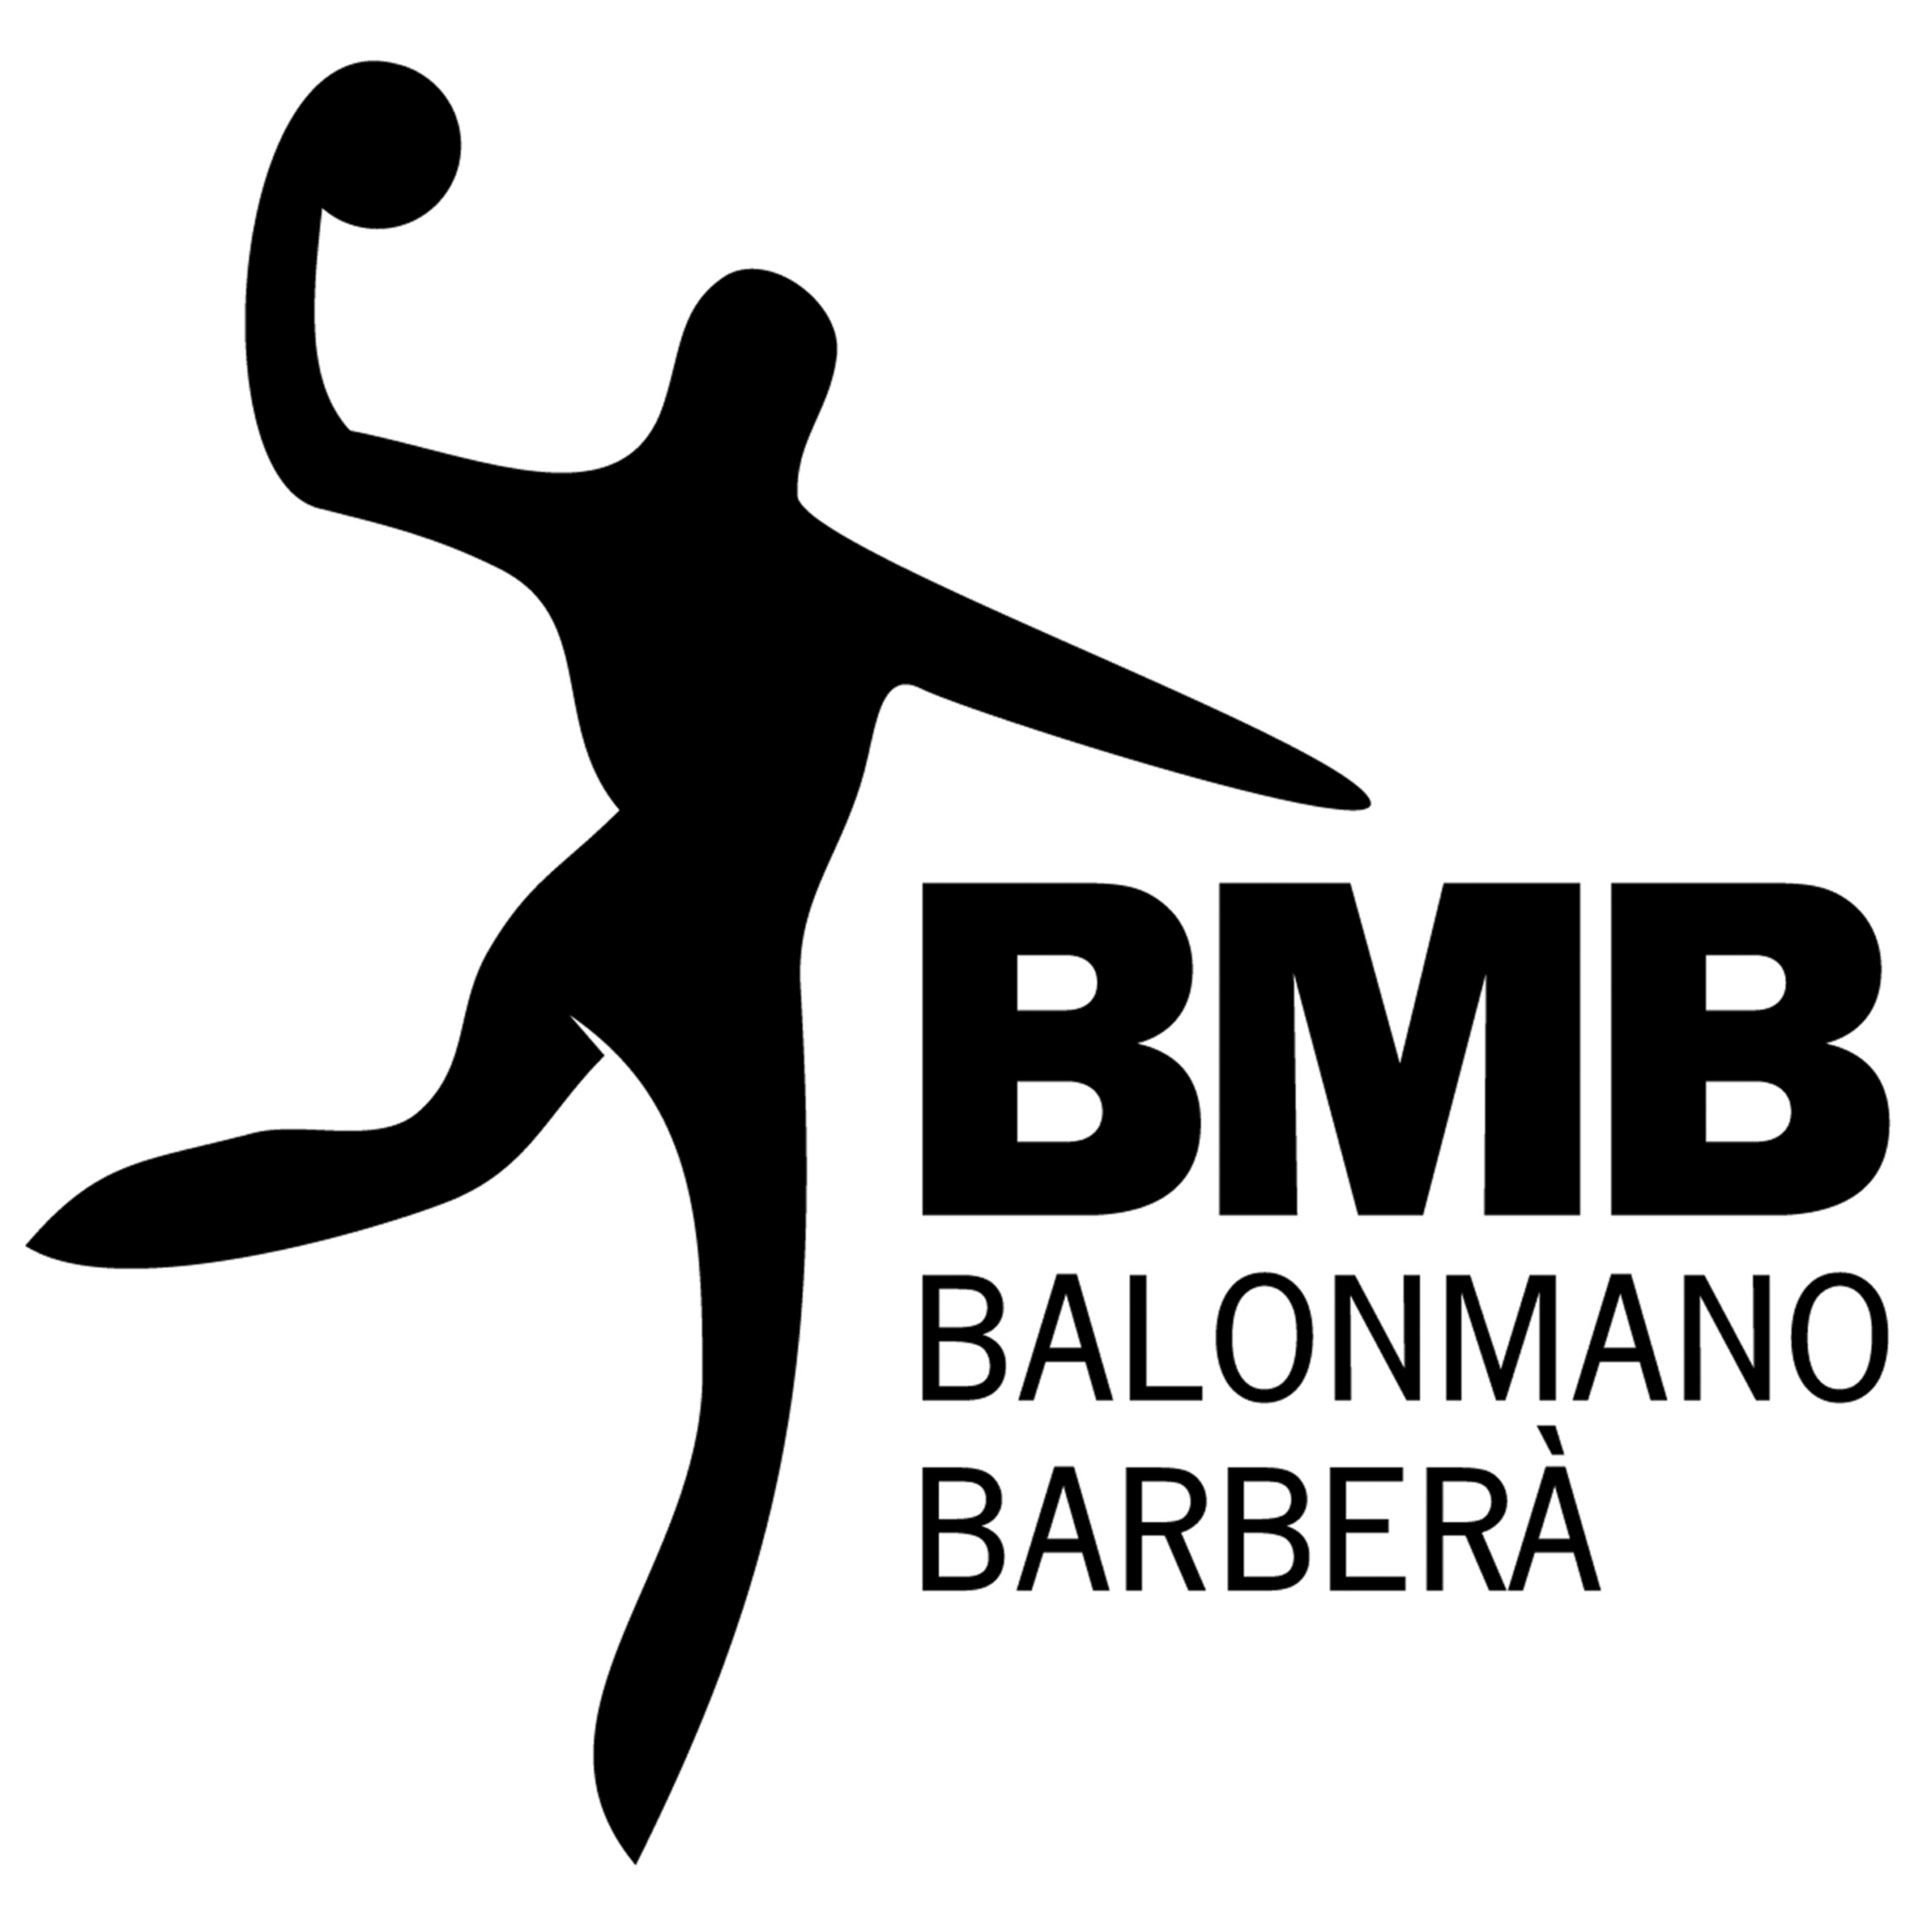 CLUB HANDBOL BARBERA